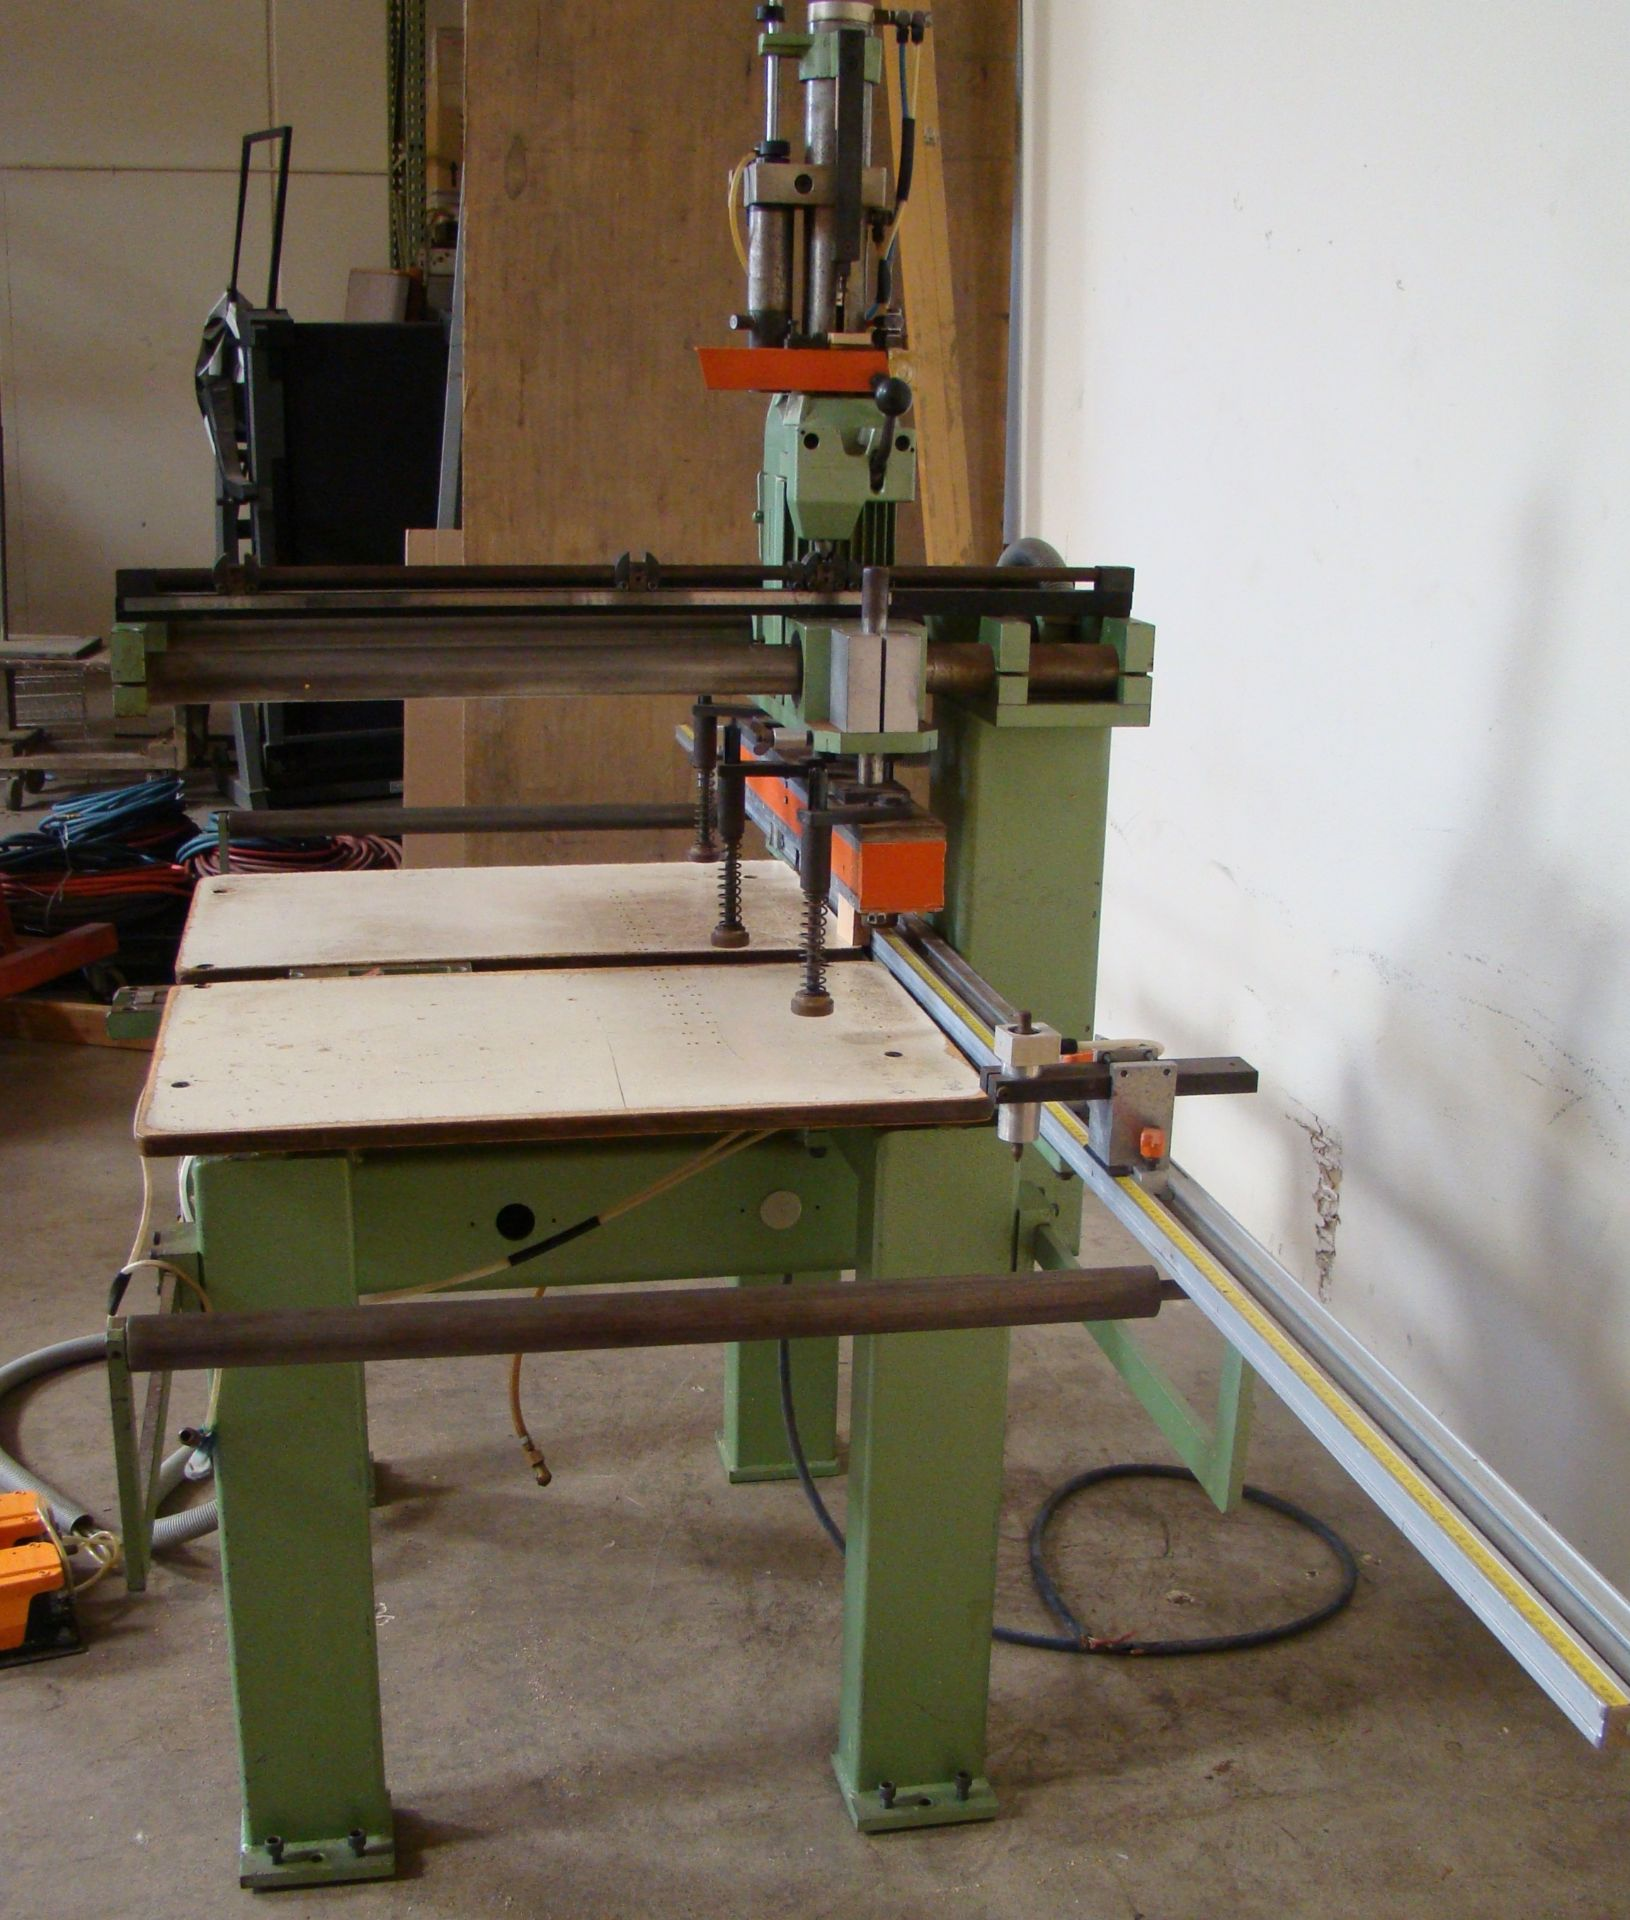 Lot 24 - Ayen 21 Spindle Pneumatic Line Boring Machine with foot pedal, 230/460 Volt 3PH